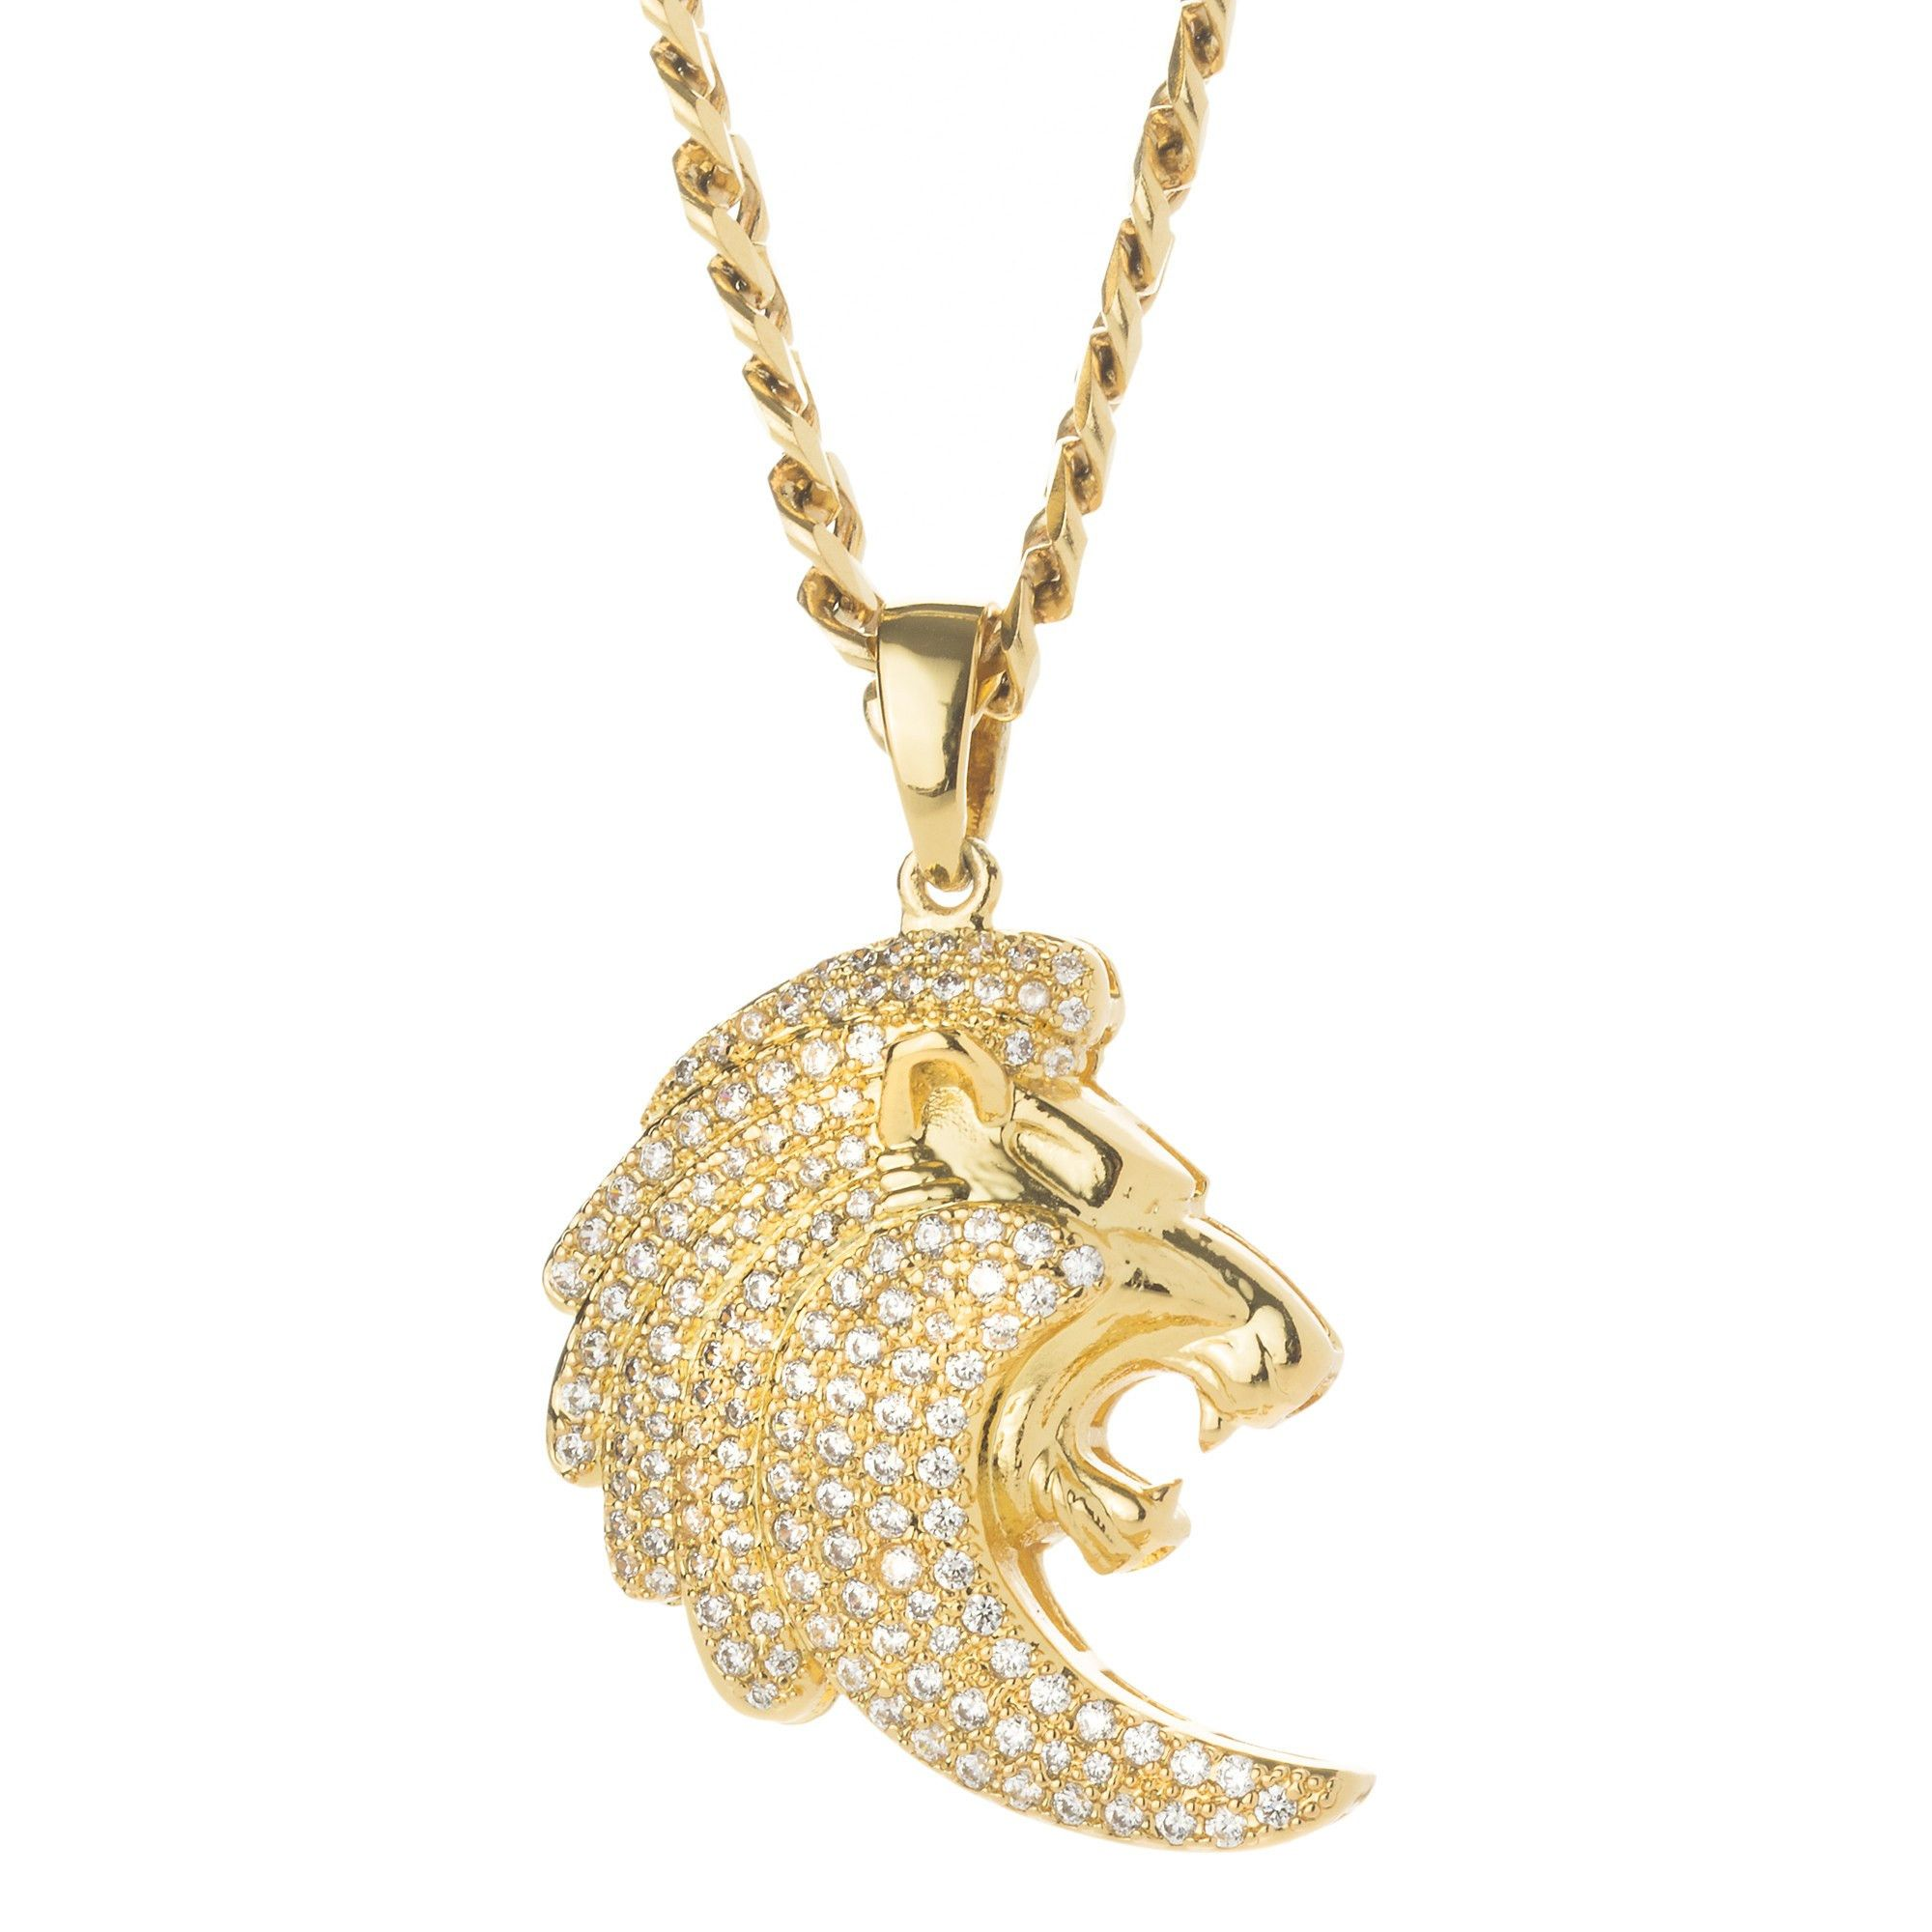 in gallery lyst jewelry necklace men metallic gucci head product normal for with pendant lion